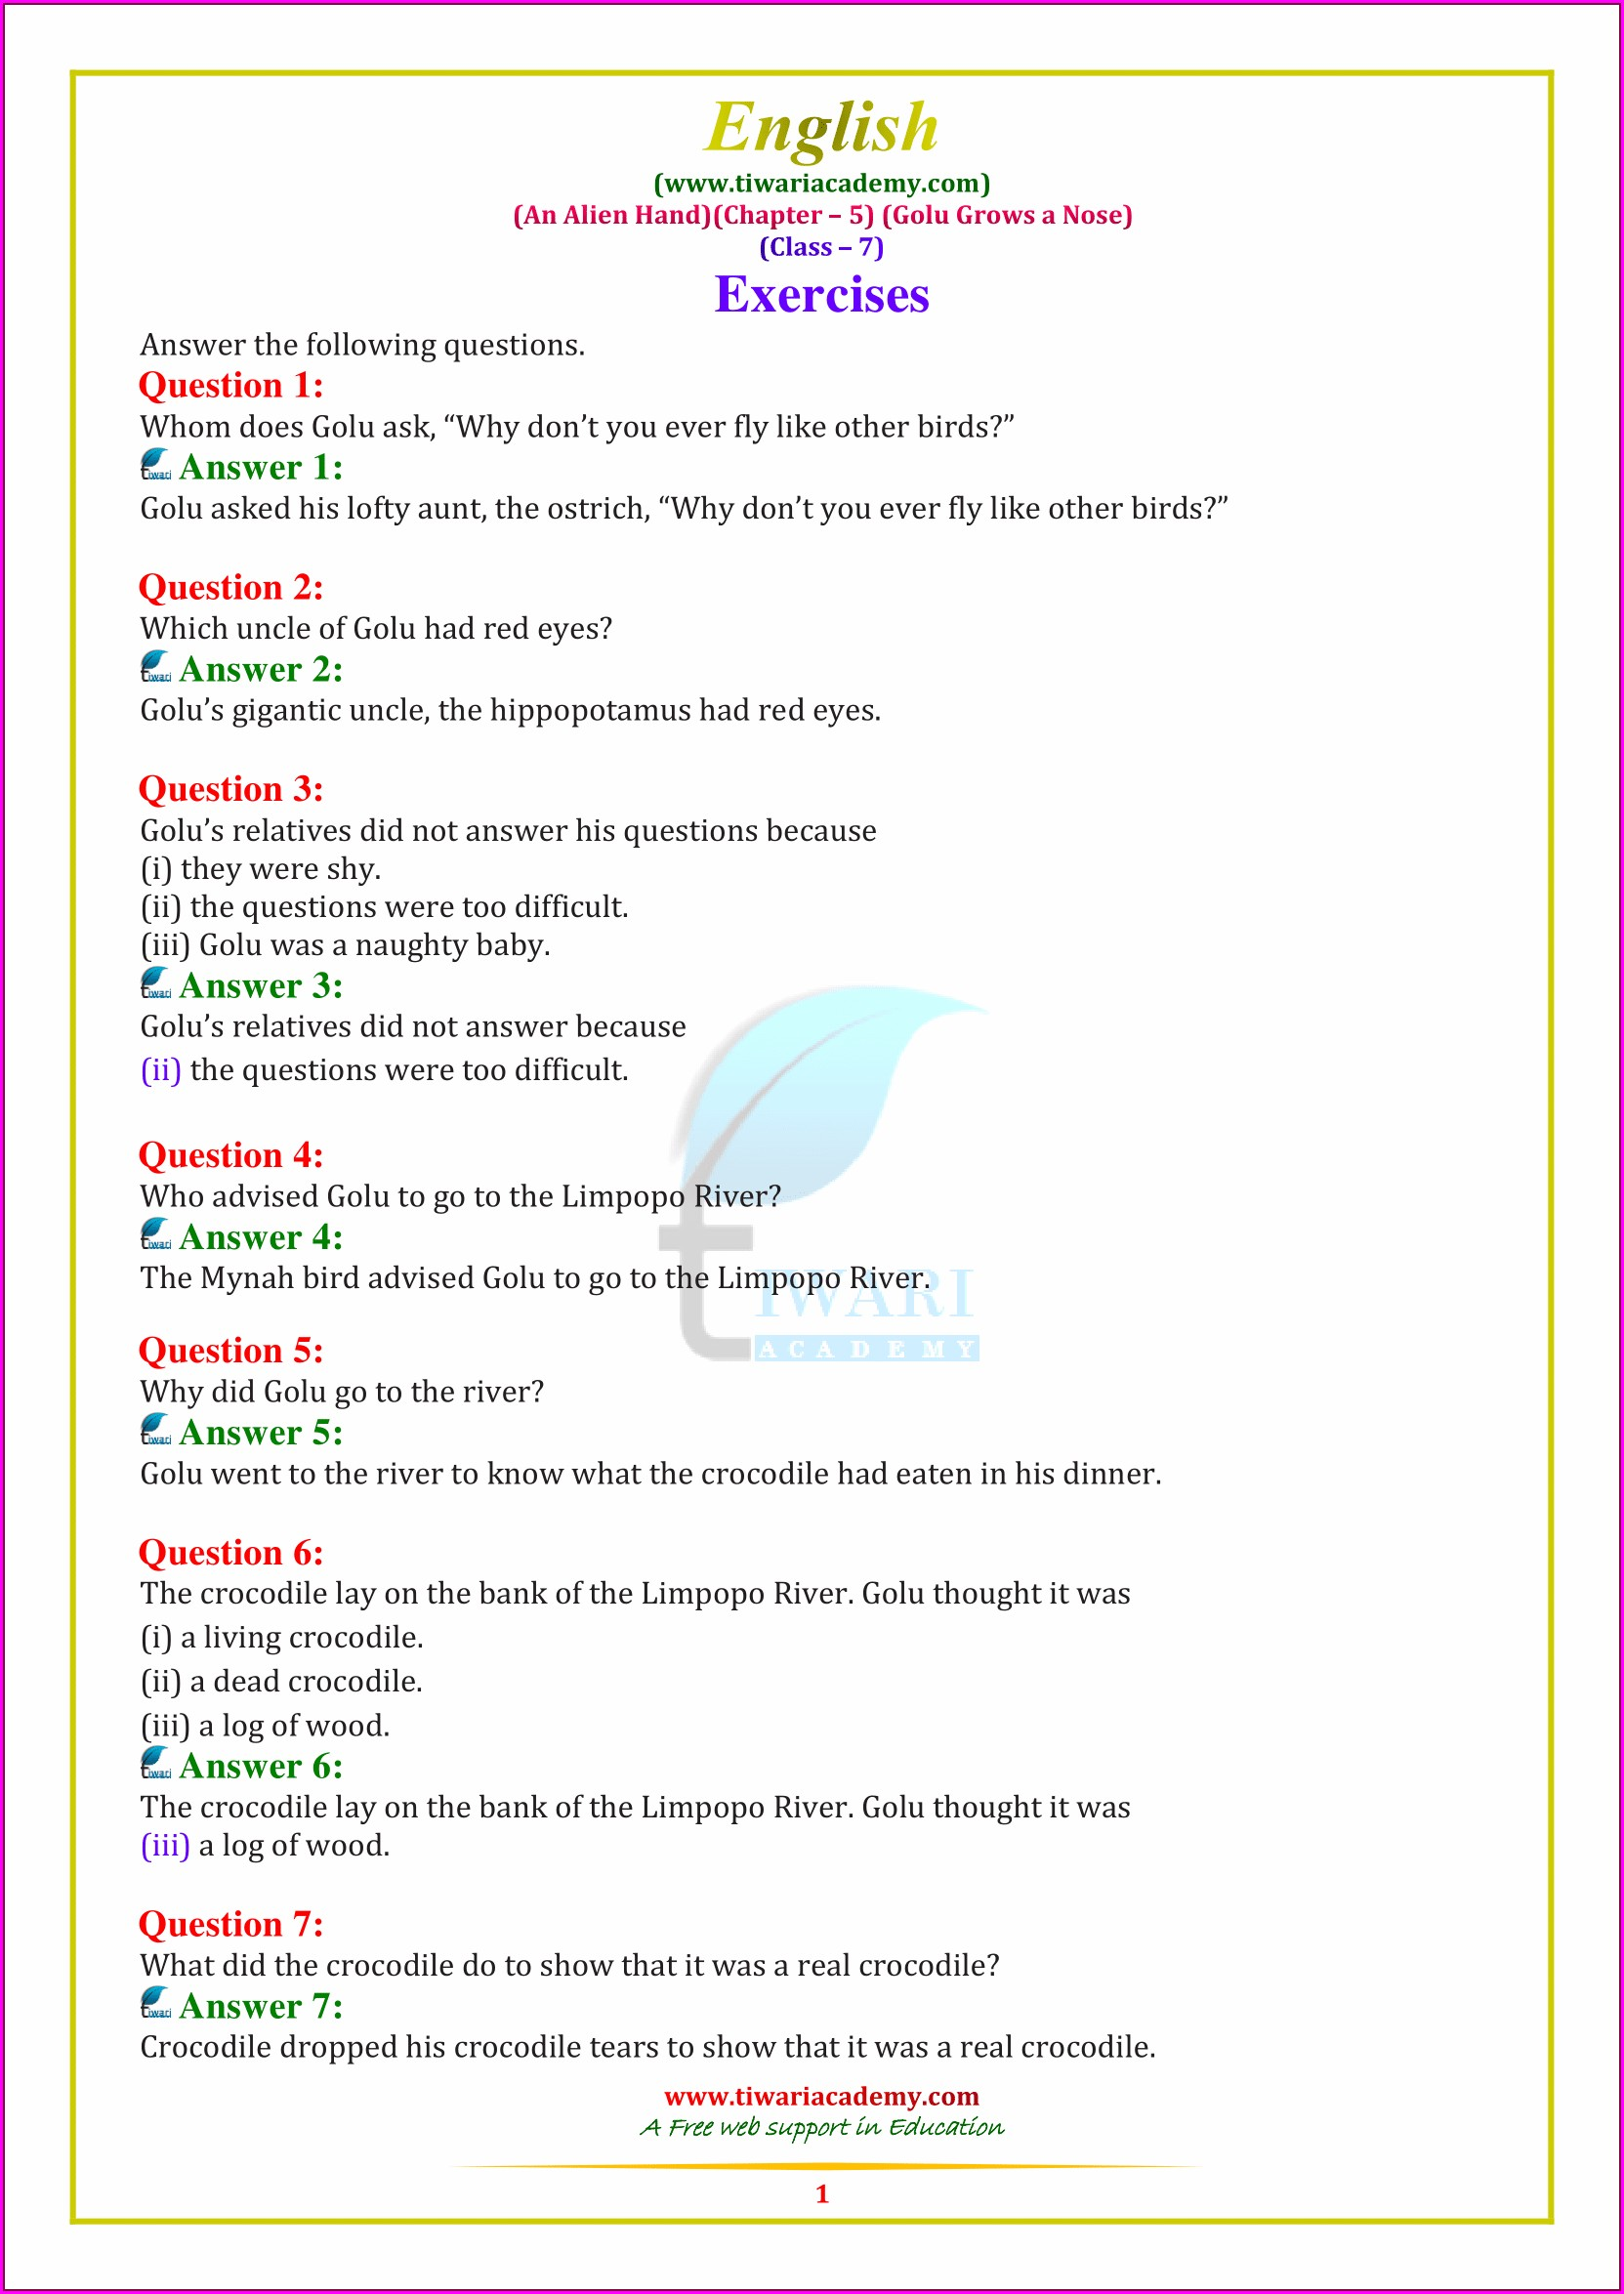 - English Grammar Exercises Worksheets With Answers لم يسبق له مثيل